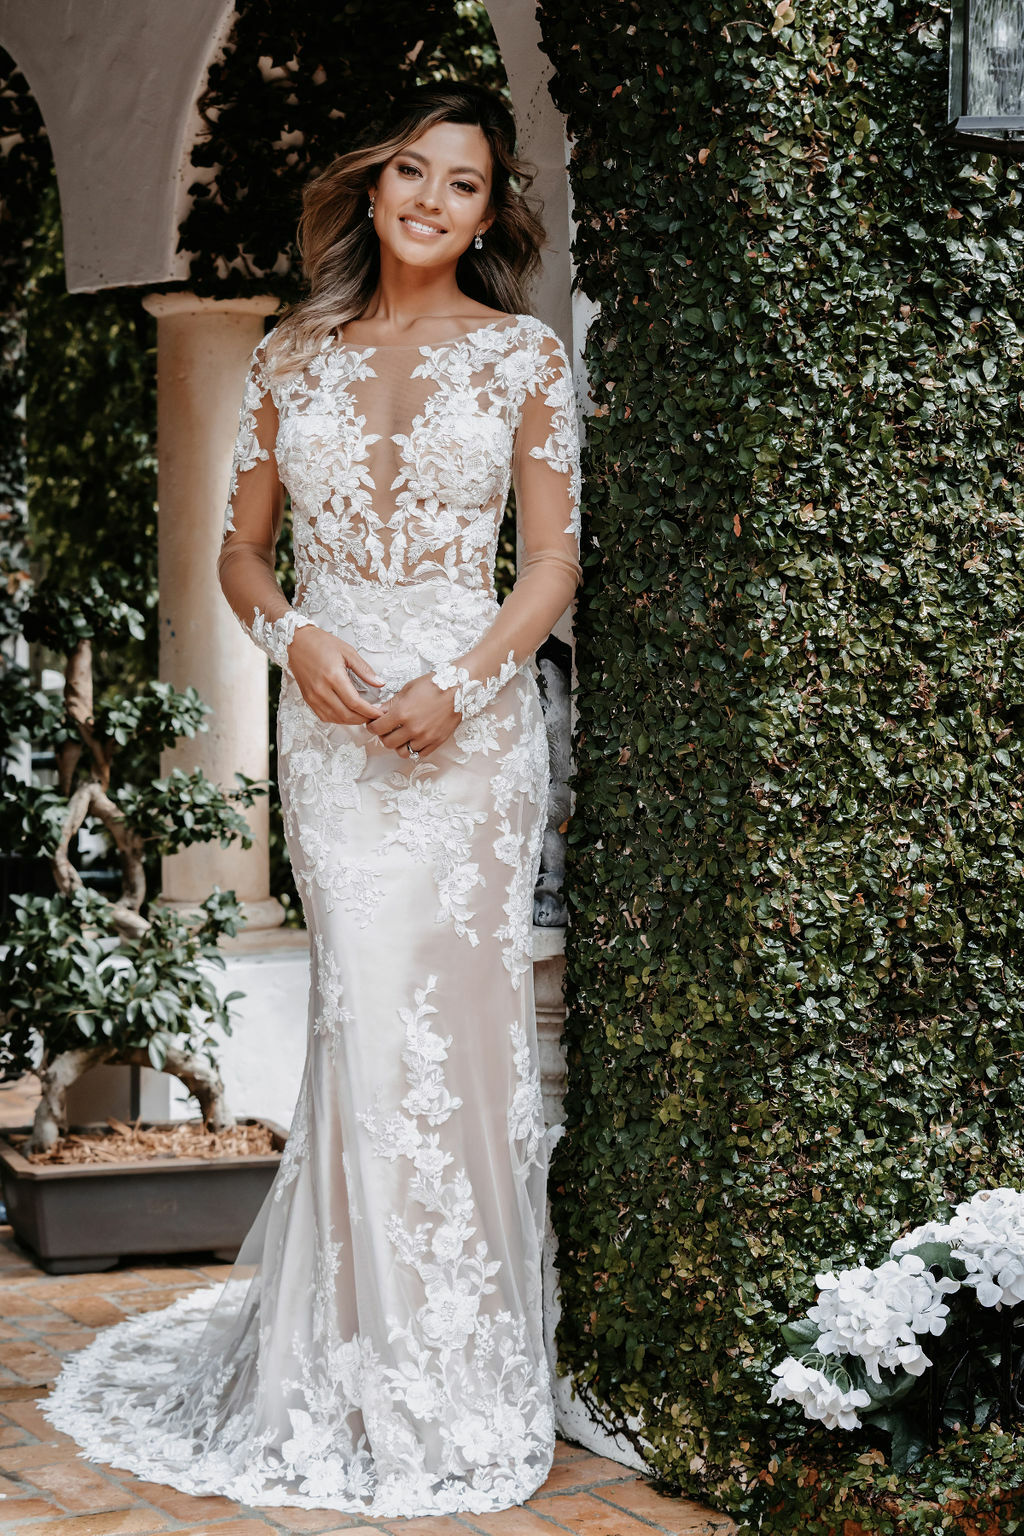 A truly unforgettable gown, this illusion sleeved sheath features the most delicate lace throughout the overskirt and bodice.